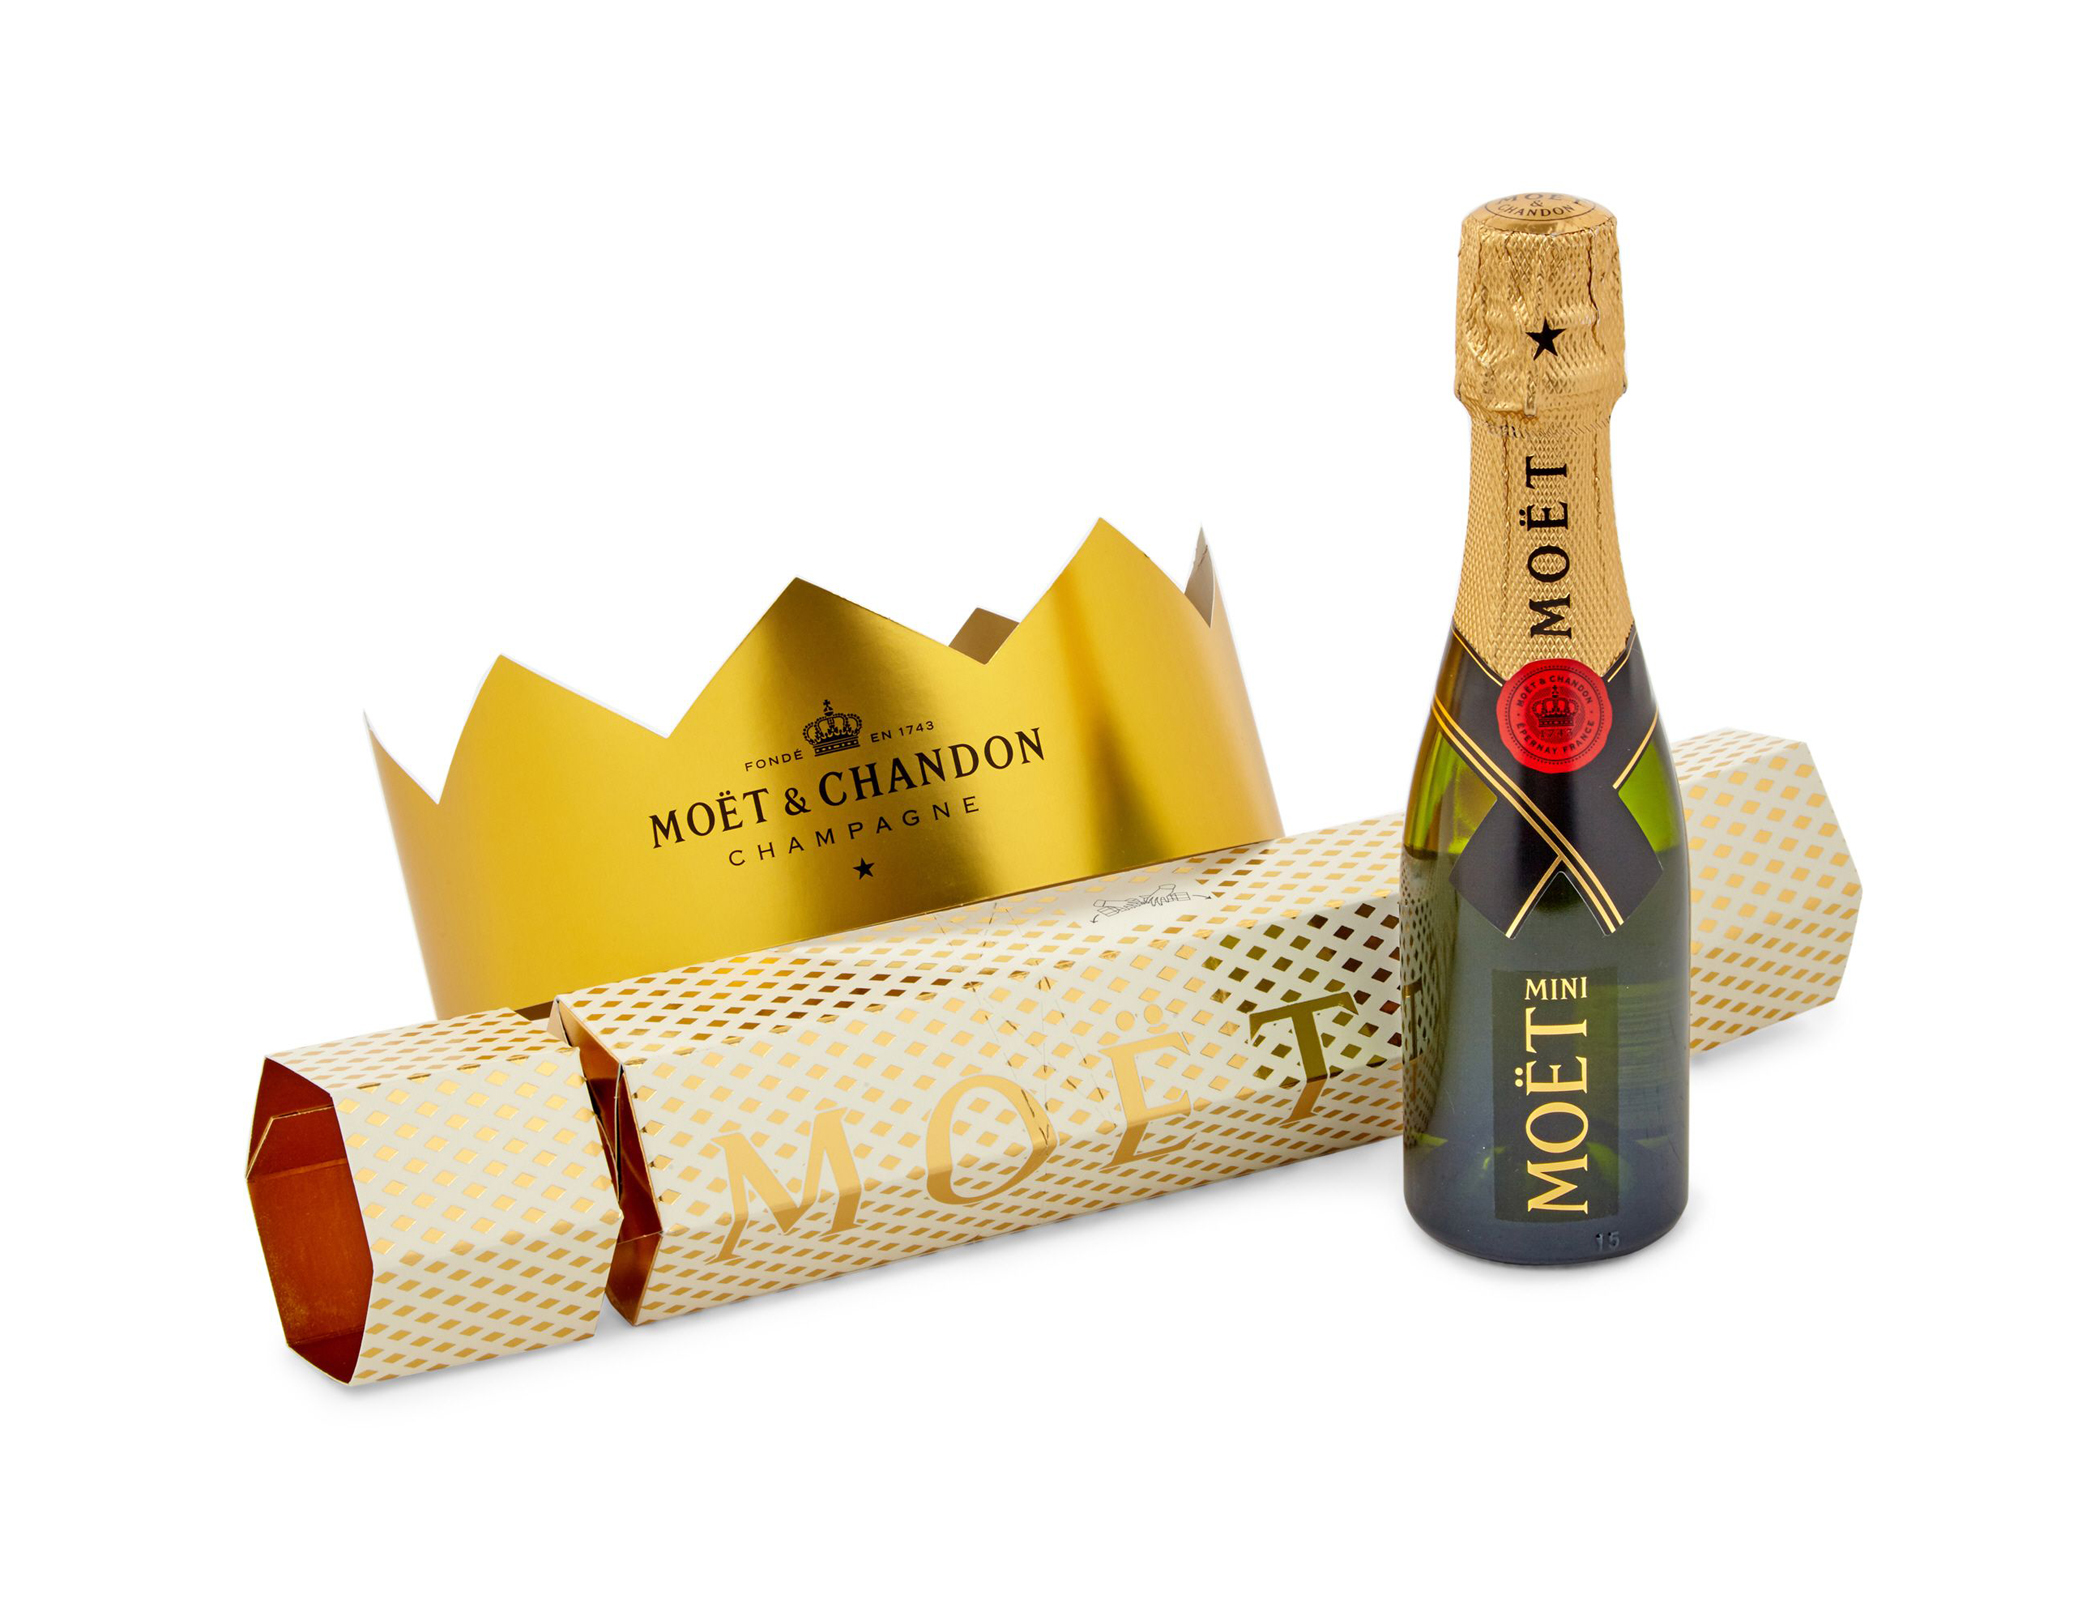 Moet & Chandon Brut Imperial Champagne Christmas Cracker, Selfridges (Moet & Chandon/PA)